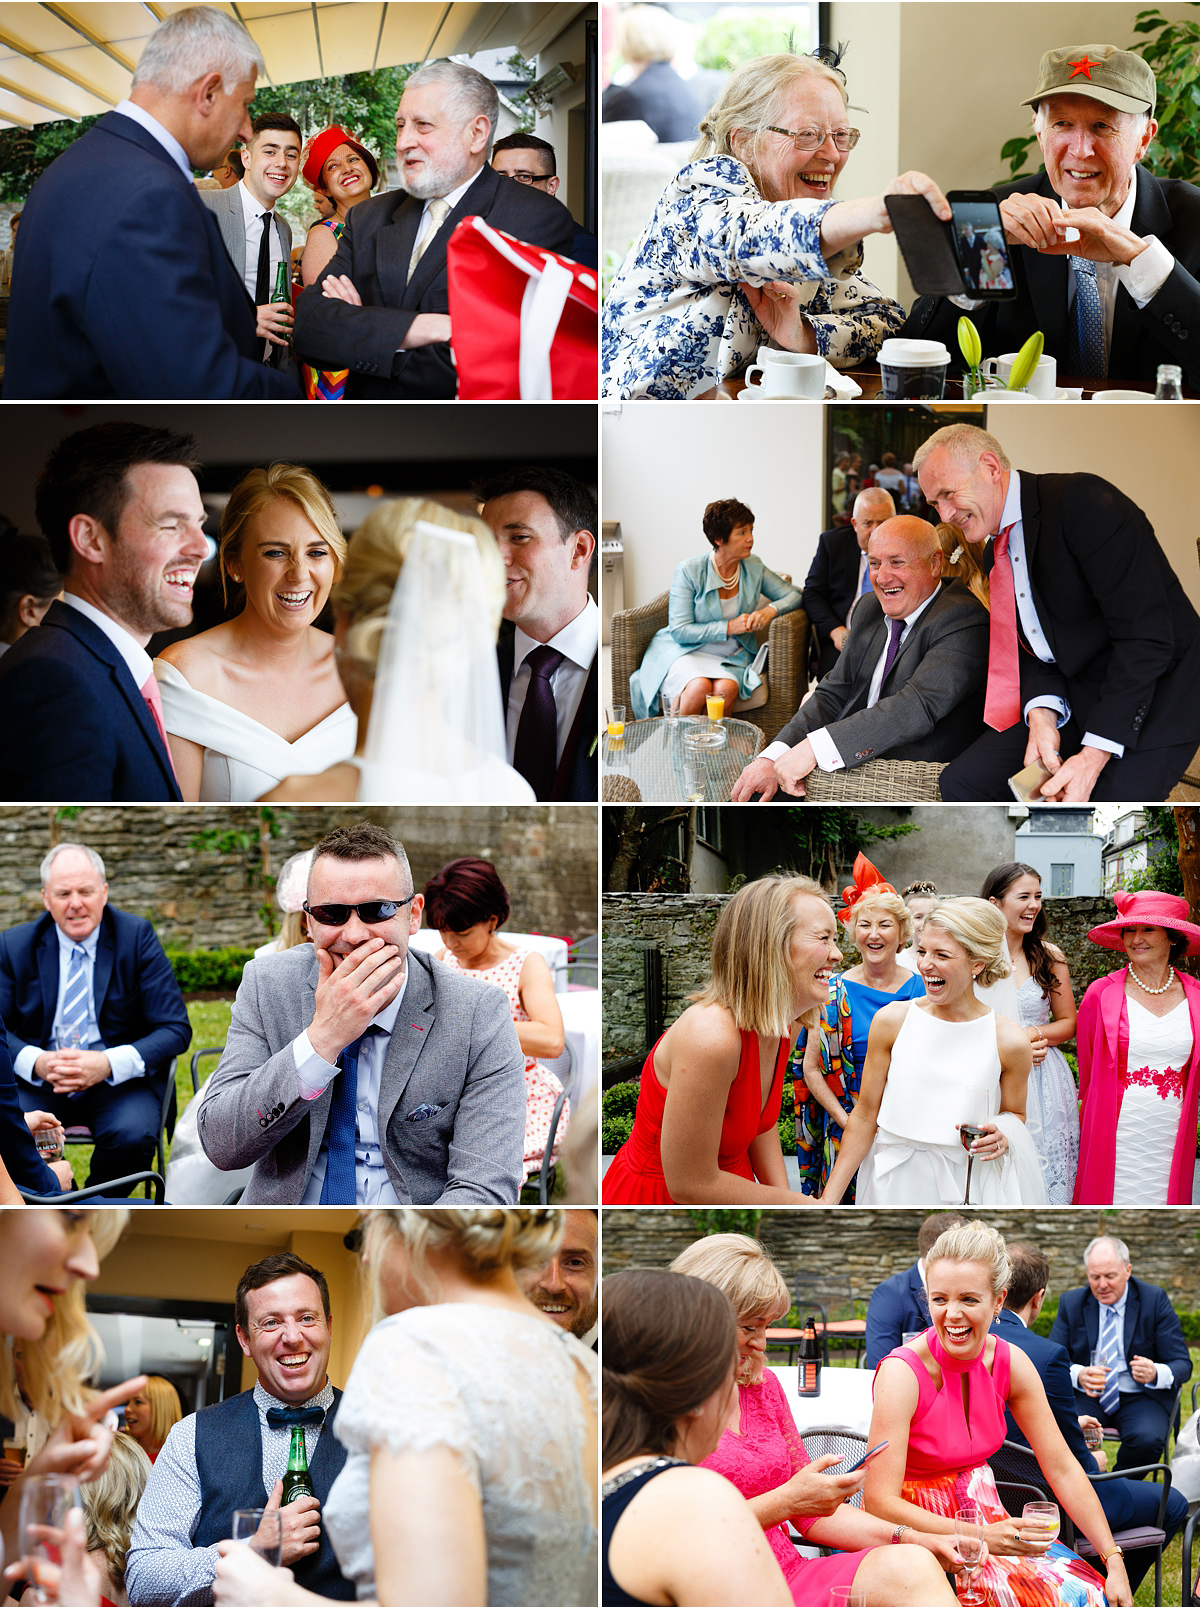 selection of small candid photographs of wedding guests having fun during drinks reception